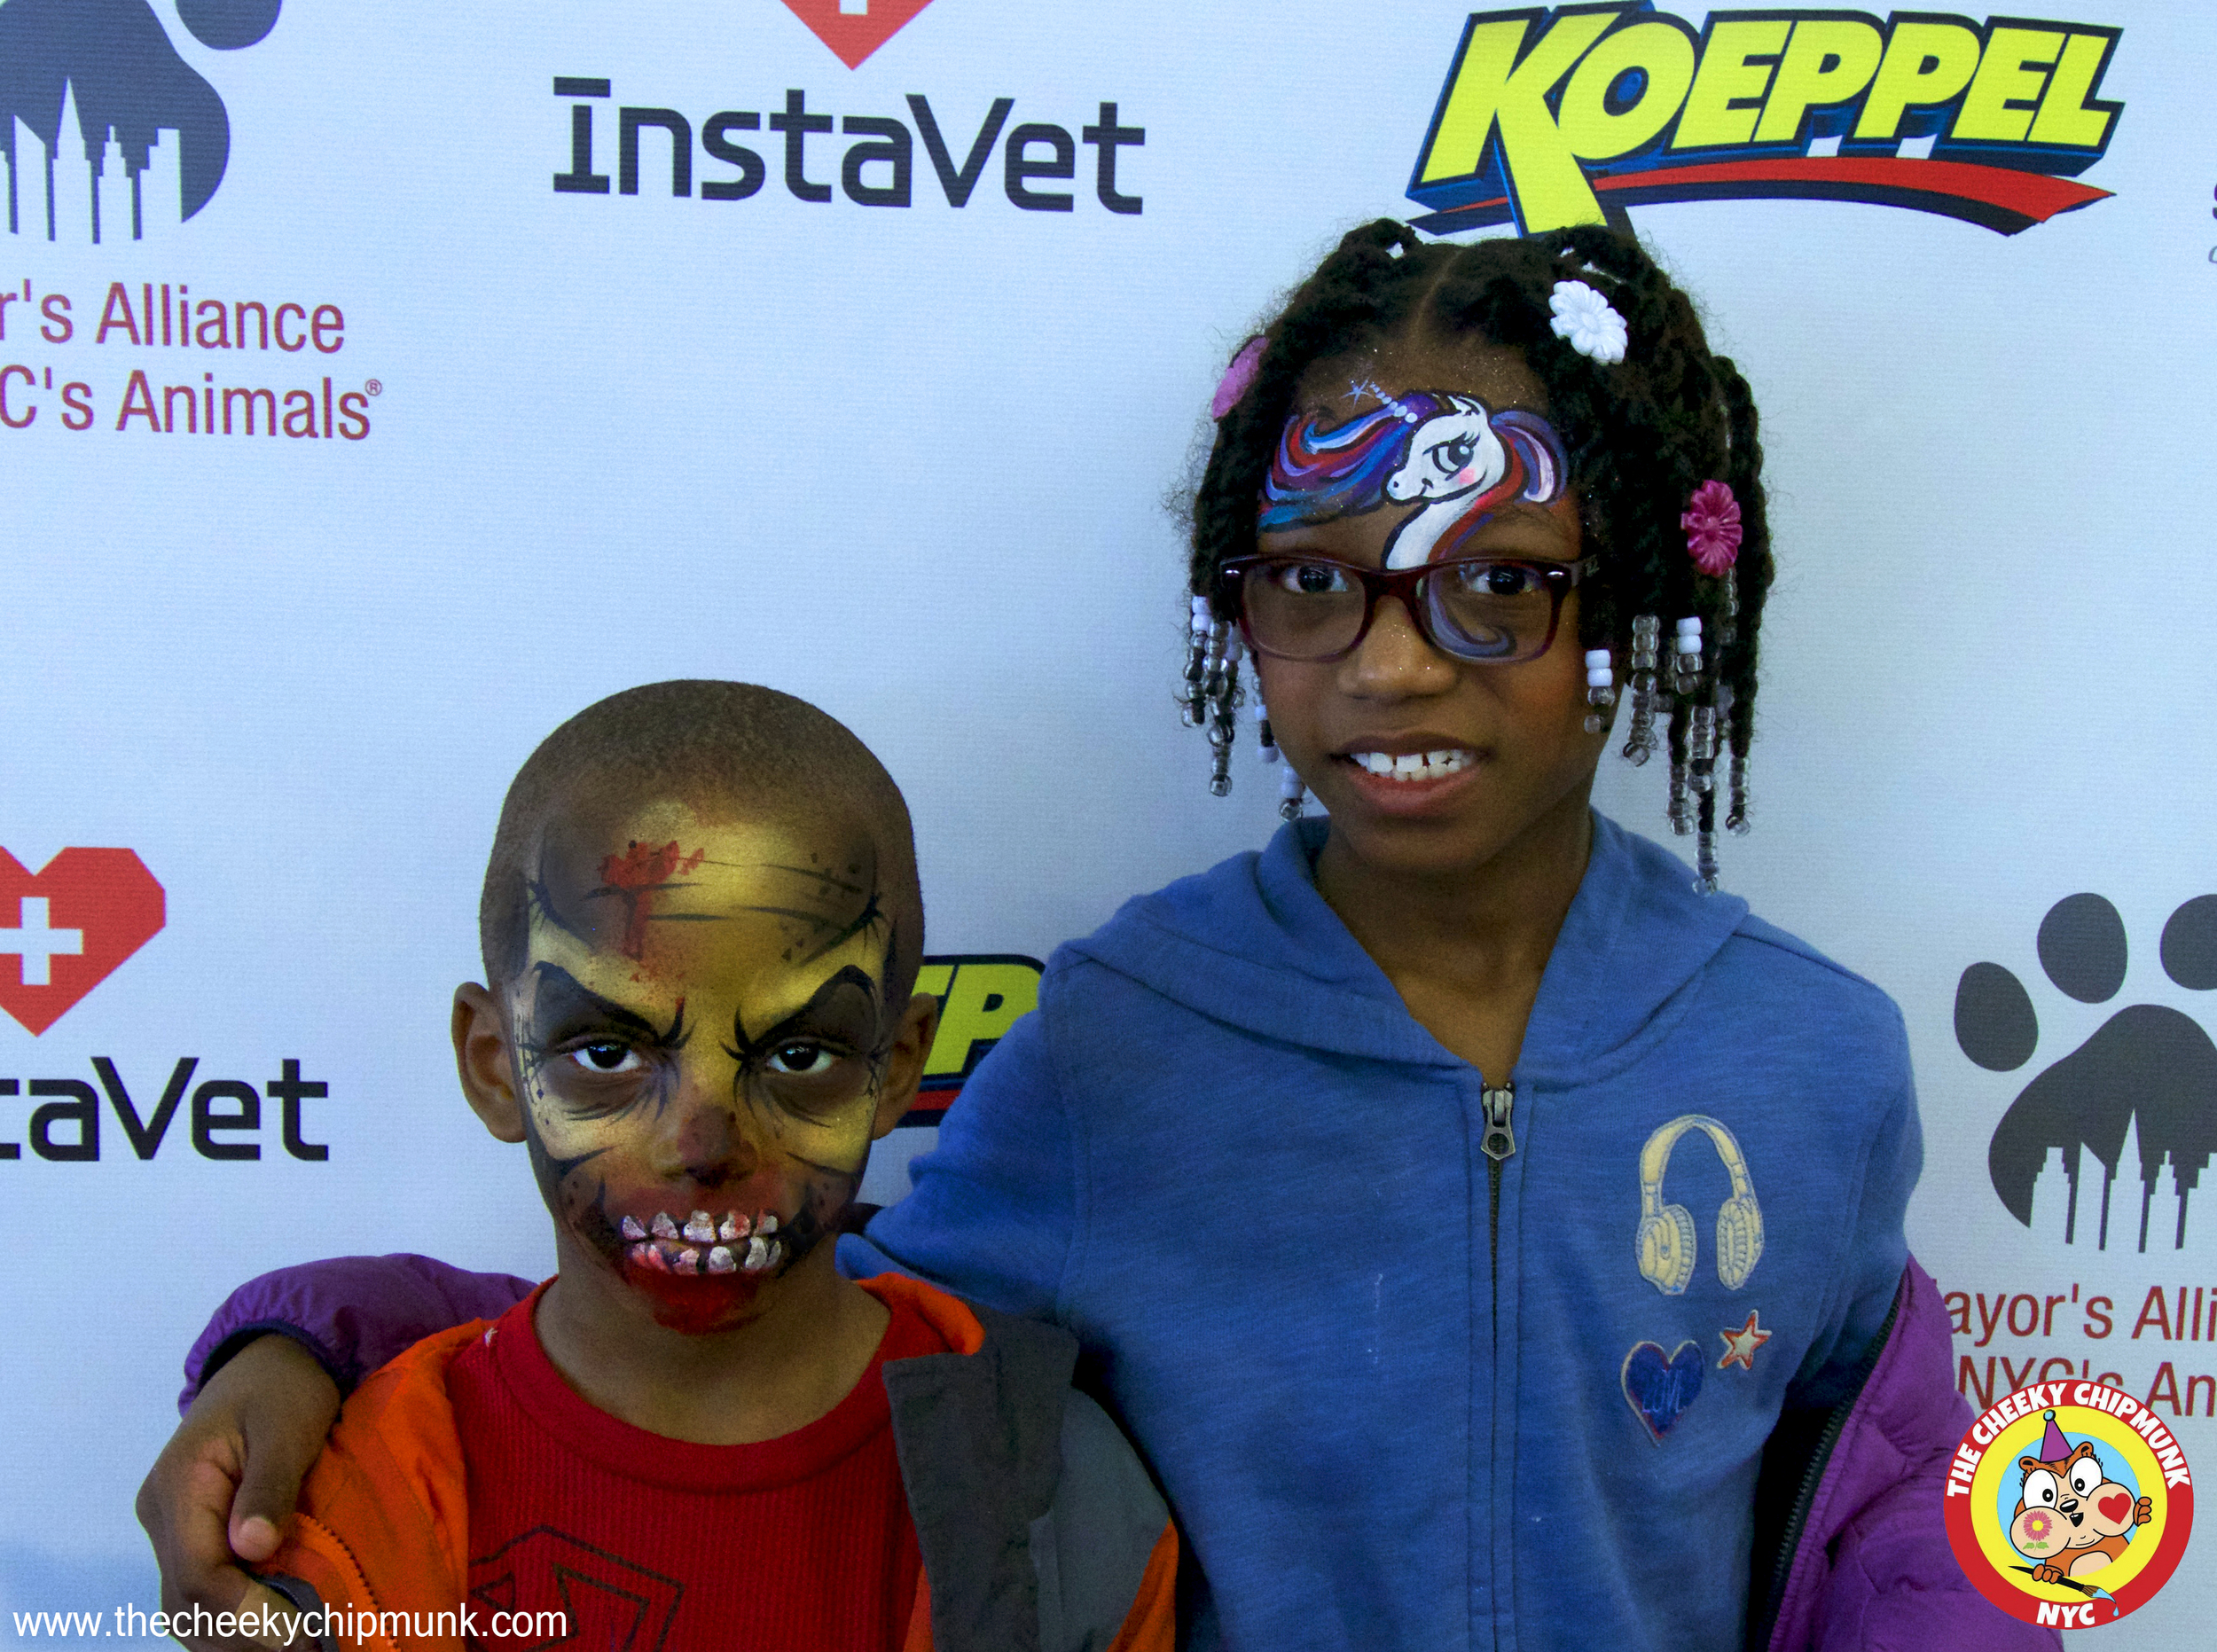 adoptapalooza may 22 2016 zombie unicorn siblings.jpg